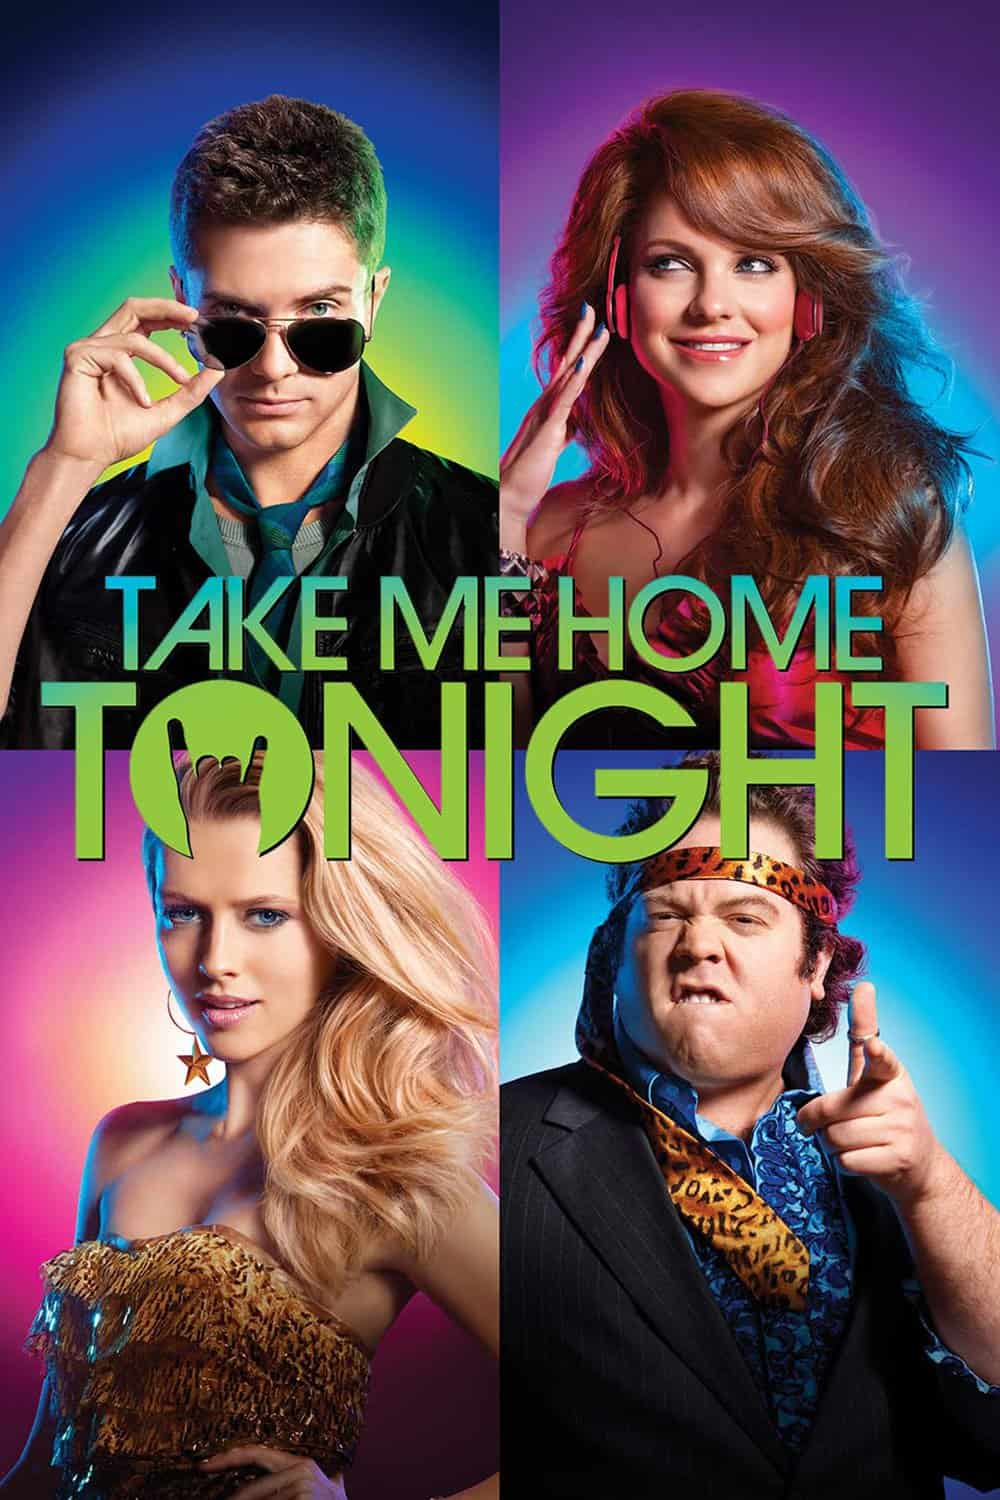 Take Me Home Tonight, 2011